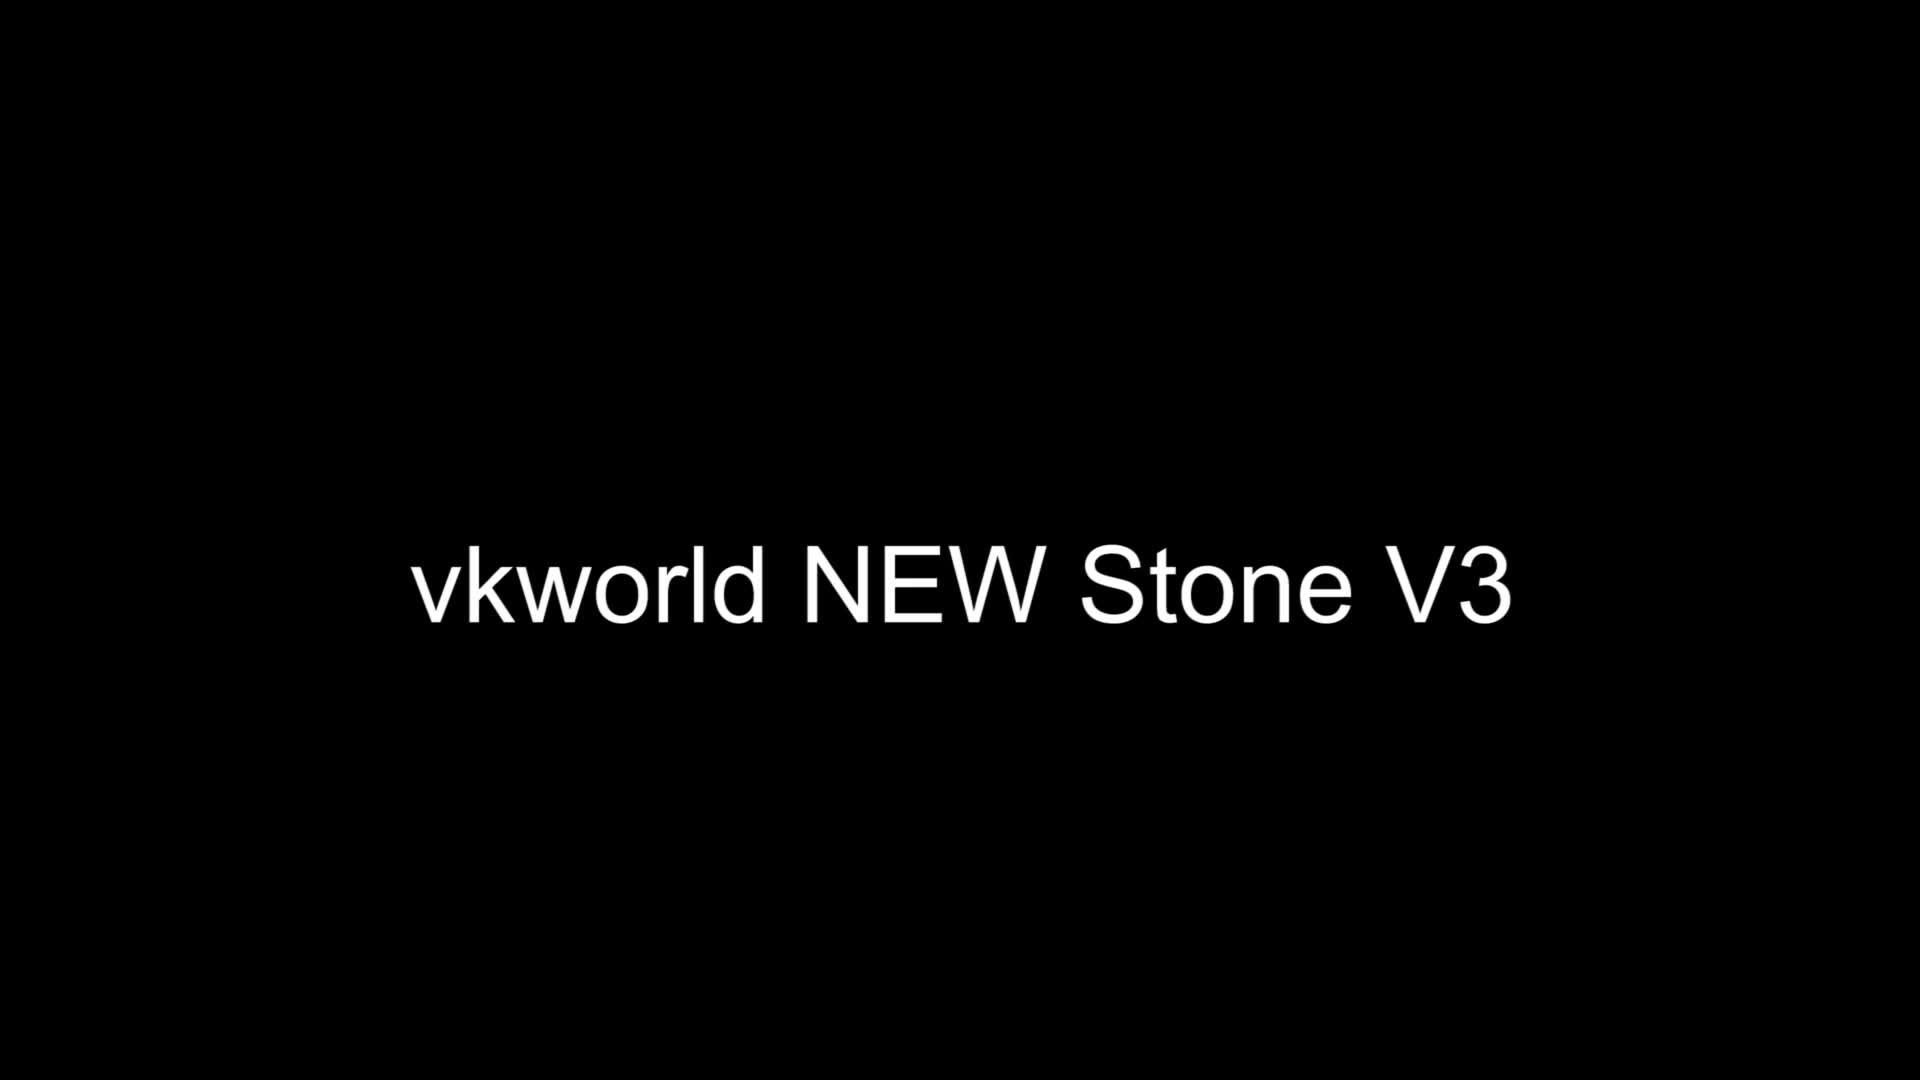 Original VKWORLD New Stone V3 IP68 Phone Waterproof Dropproof Rugged Phone Big Battery China Mobile Phone support Power Bank